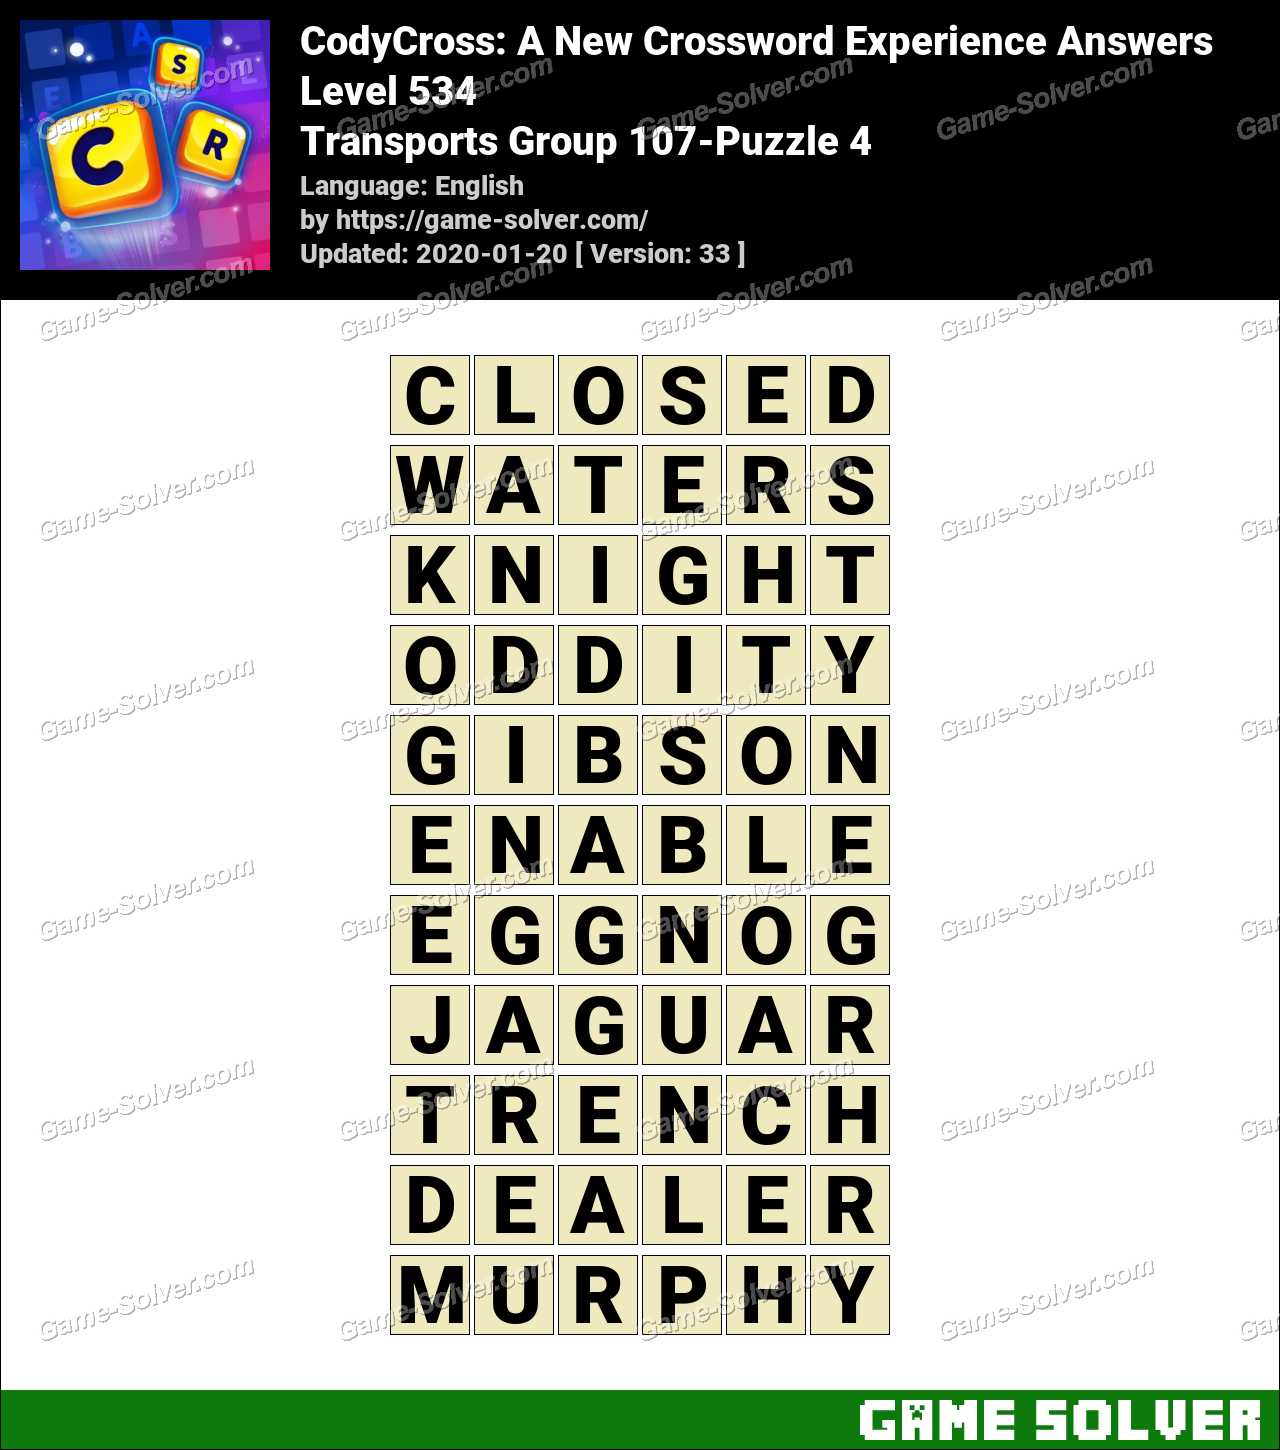 CodyCross Transports Group 107-Puzzle 4 Answers